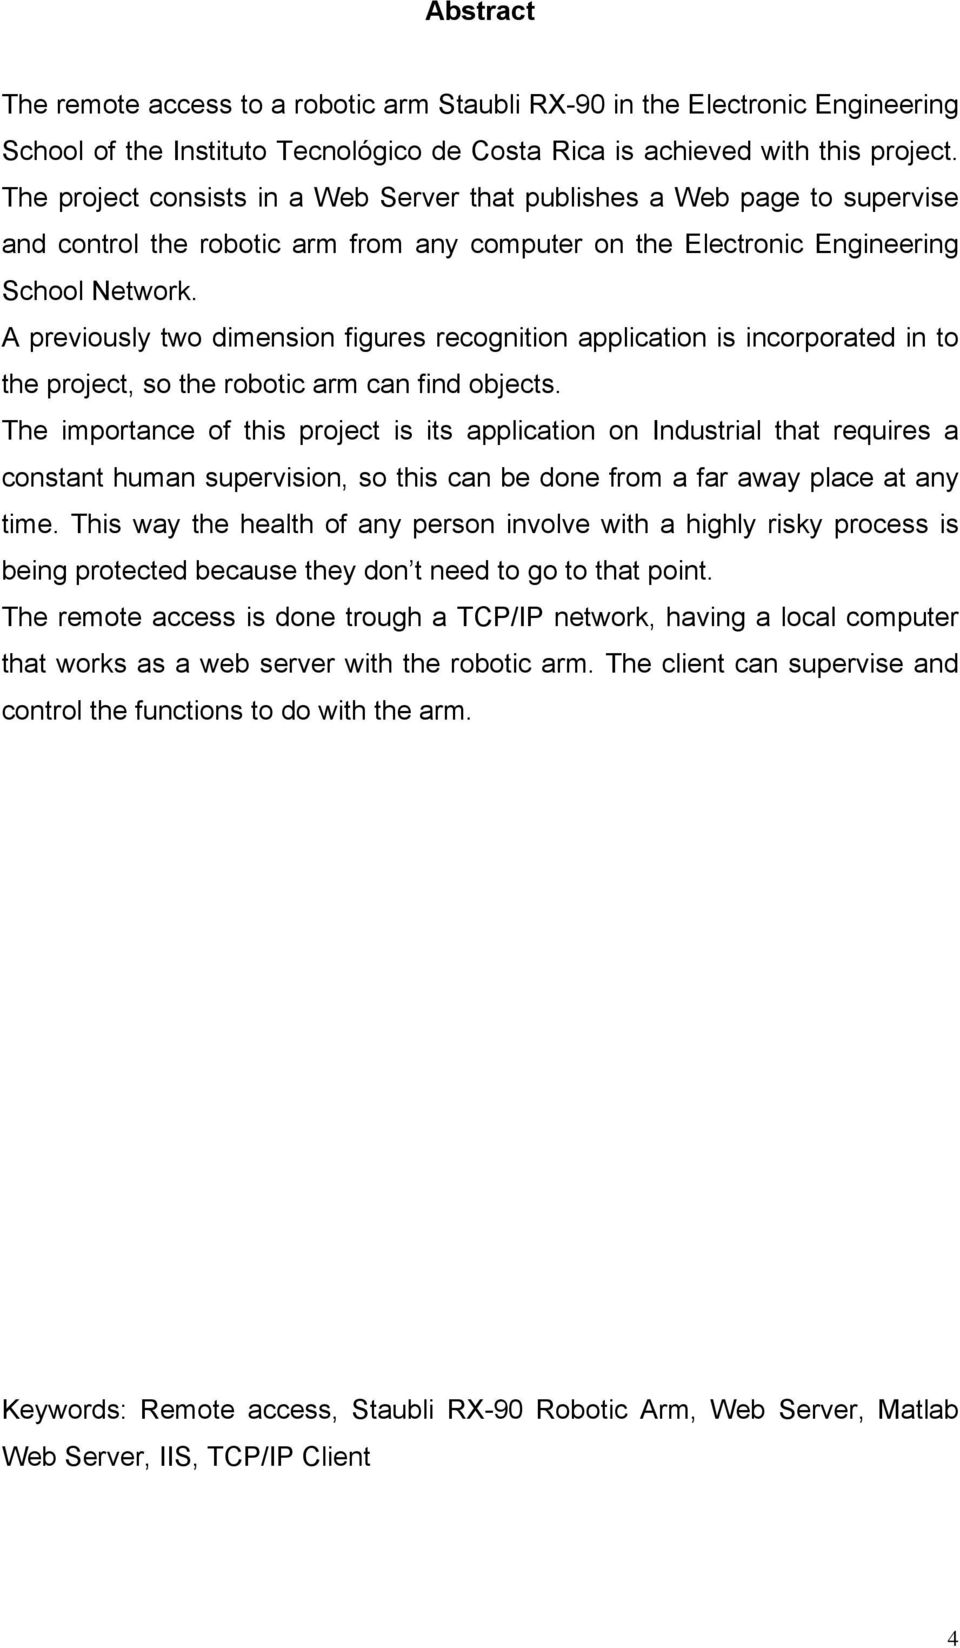 A previously two dimension figures recognition application is incorporated in to the project, so the robotic arm can find objects.